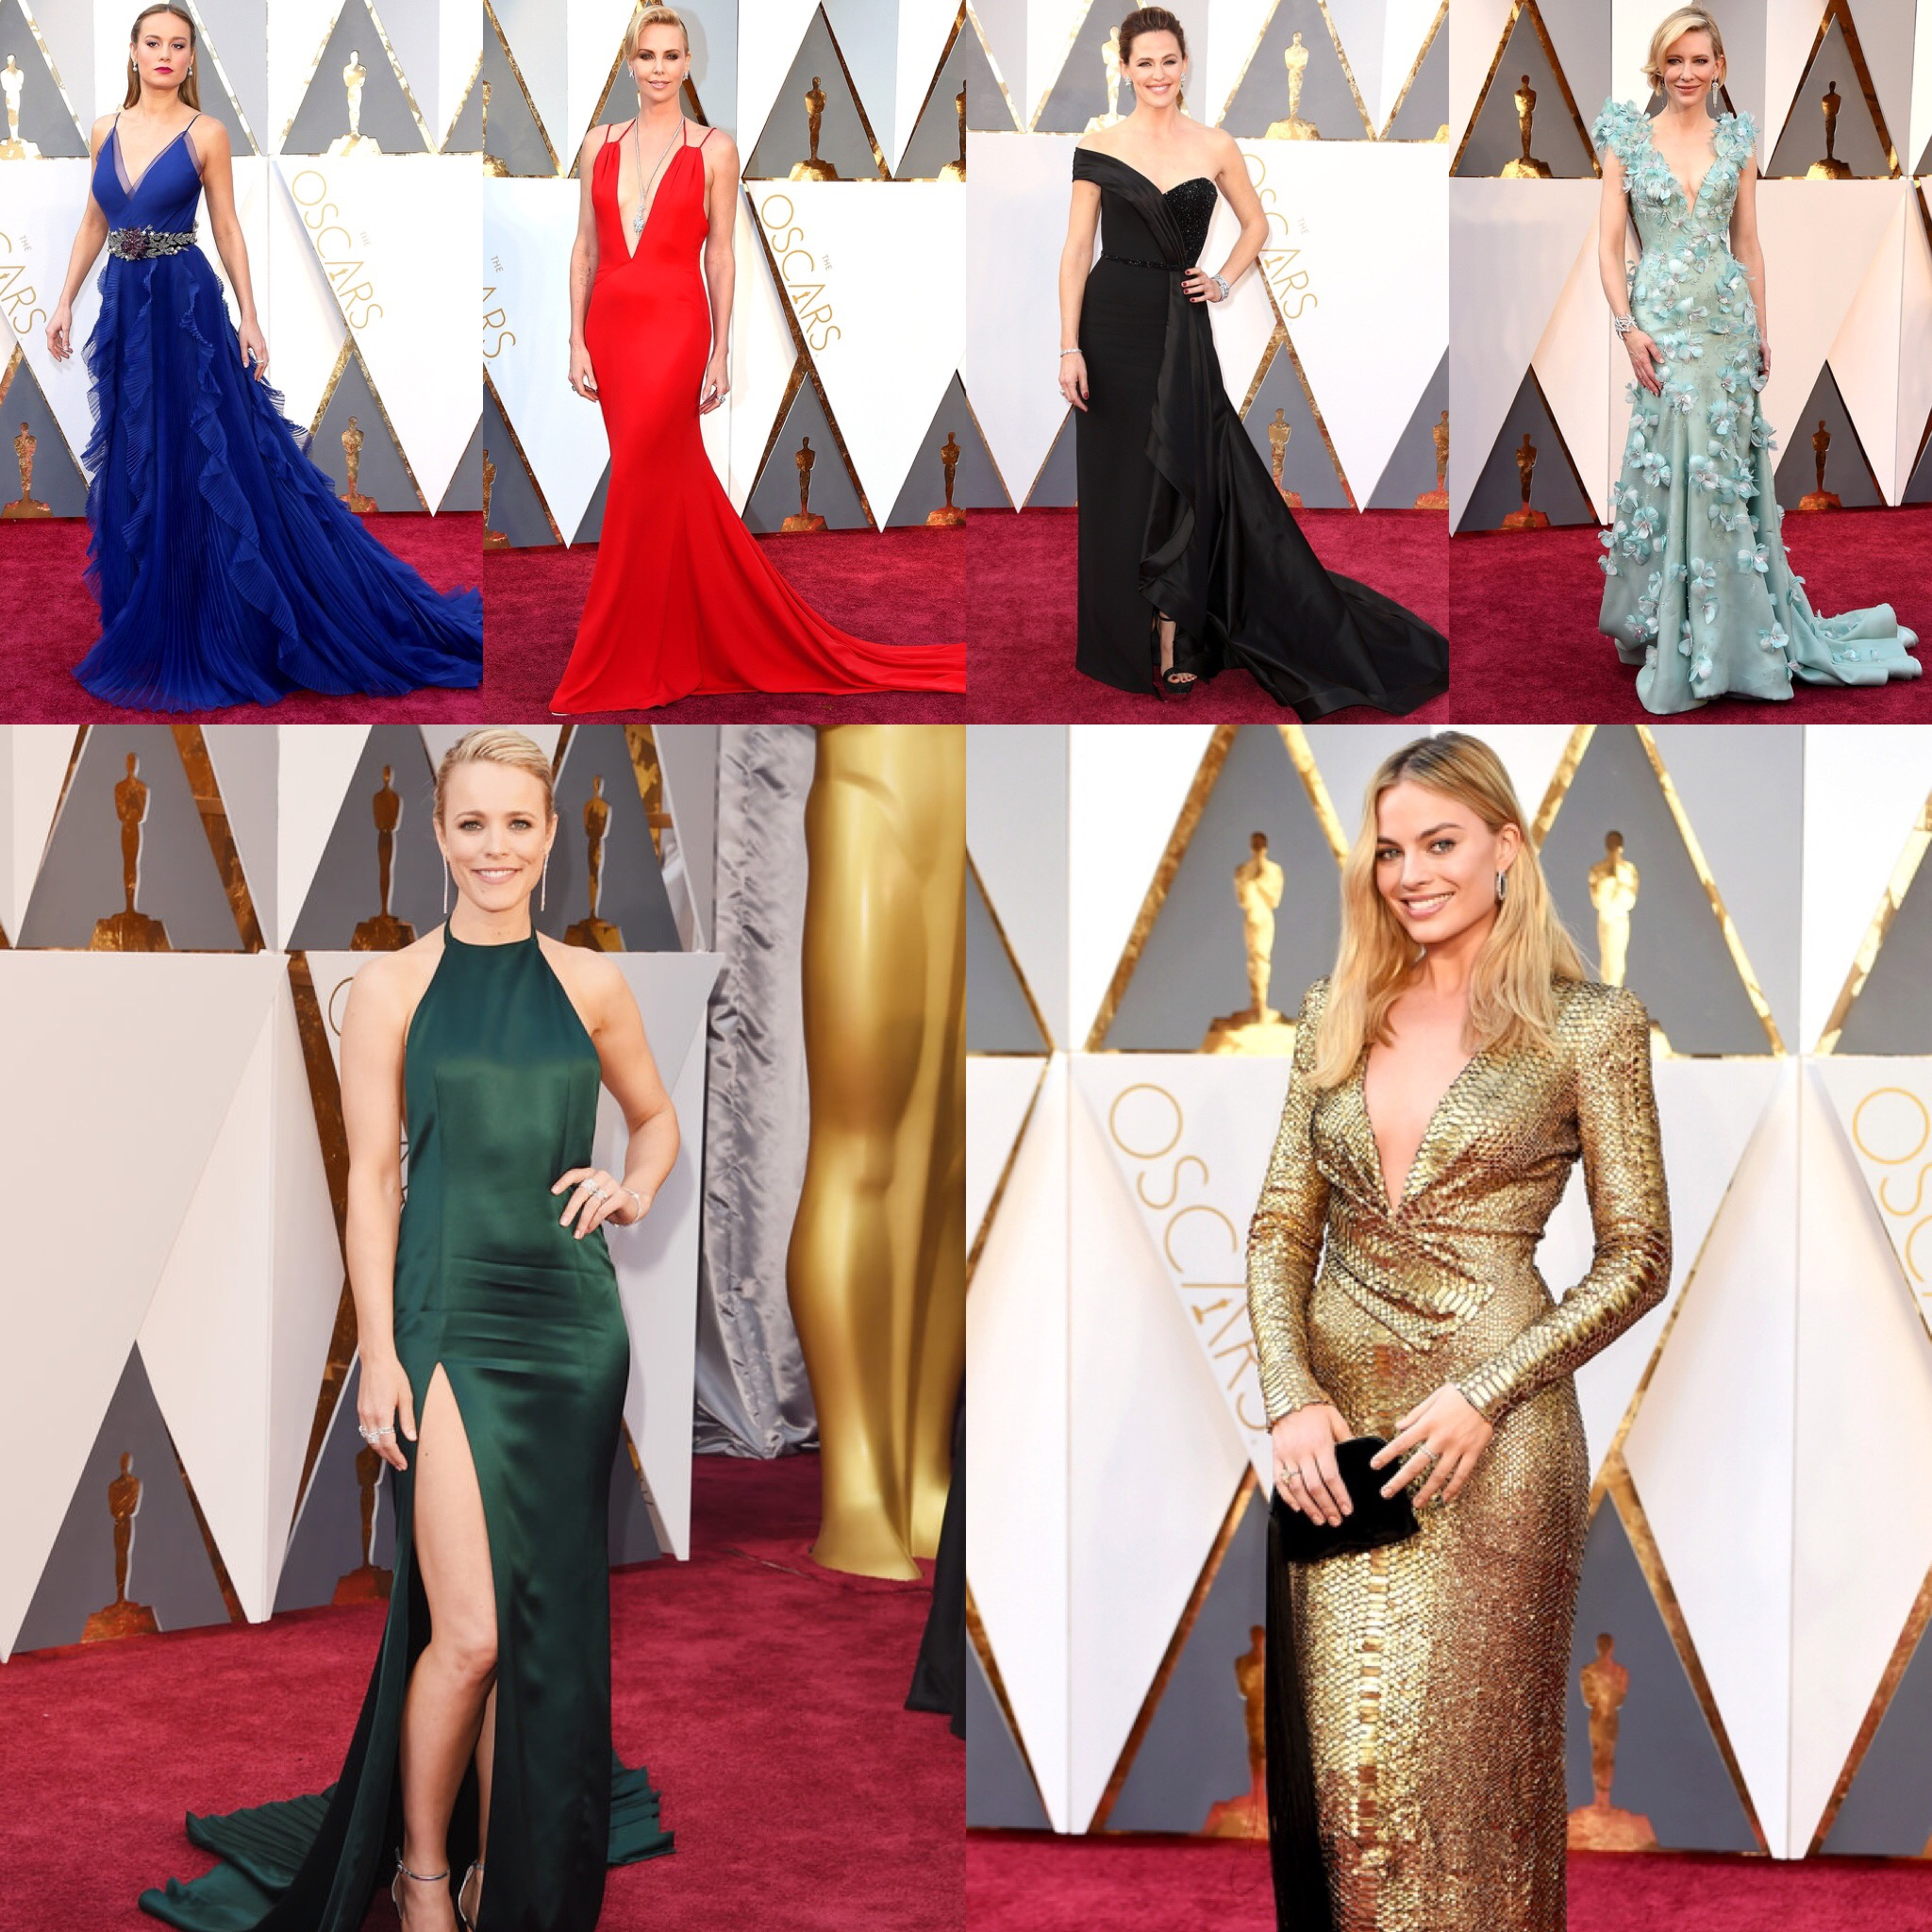 TEN OSCARS 2016 RED CARPET DRESSES I WOULD WEAR